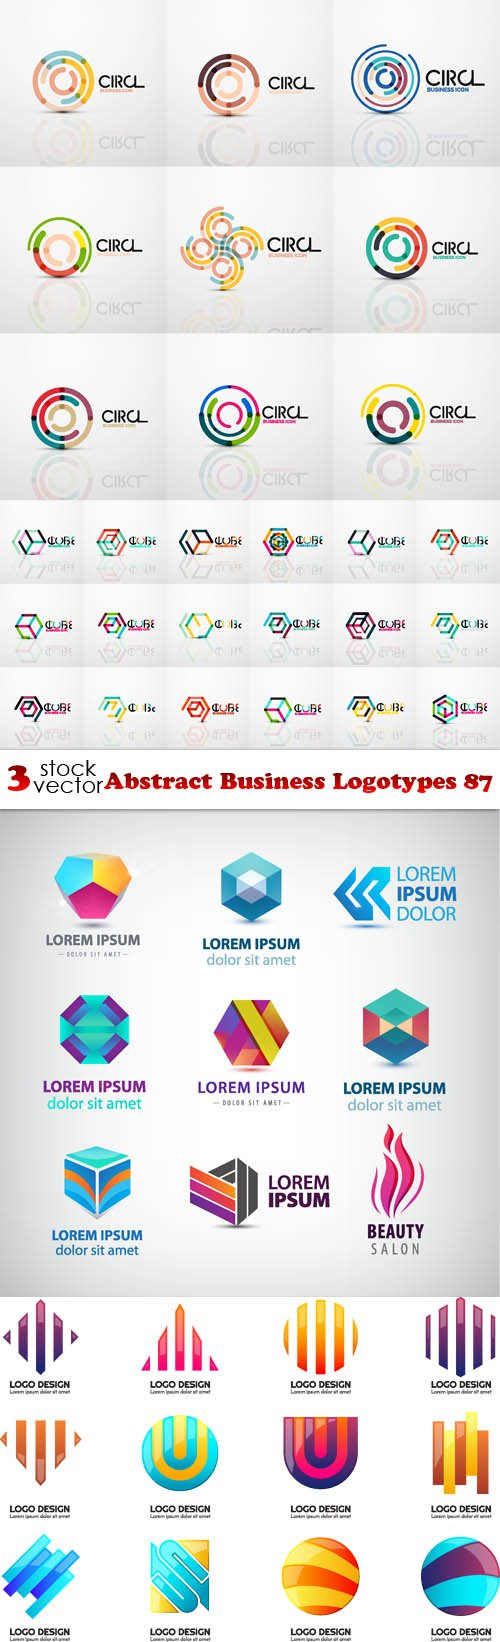 Vectors - Abstract Business Logotypes 87